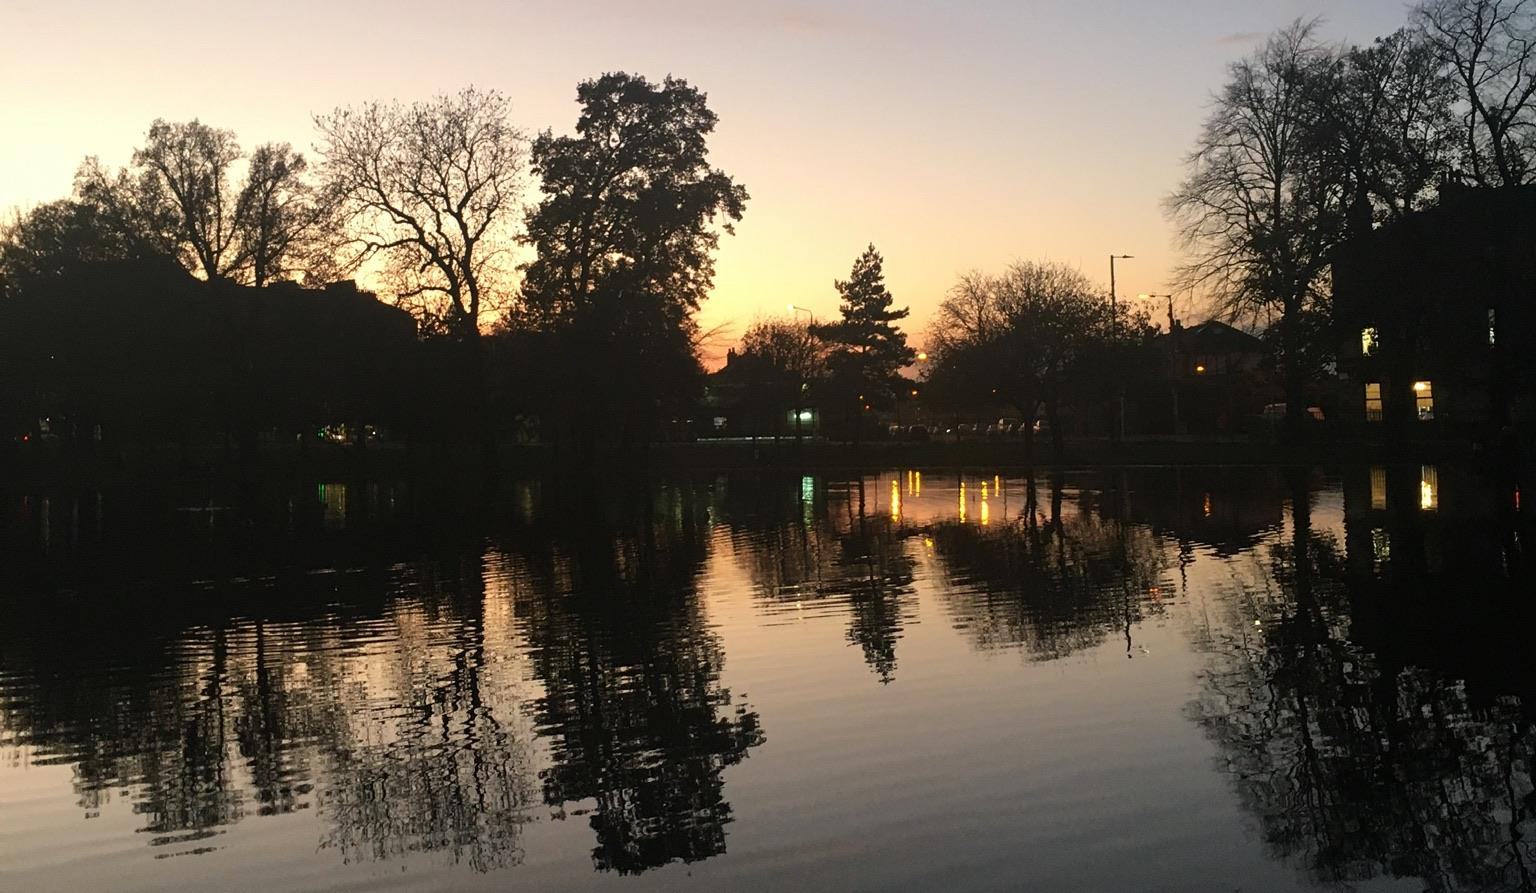 The boating pond